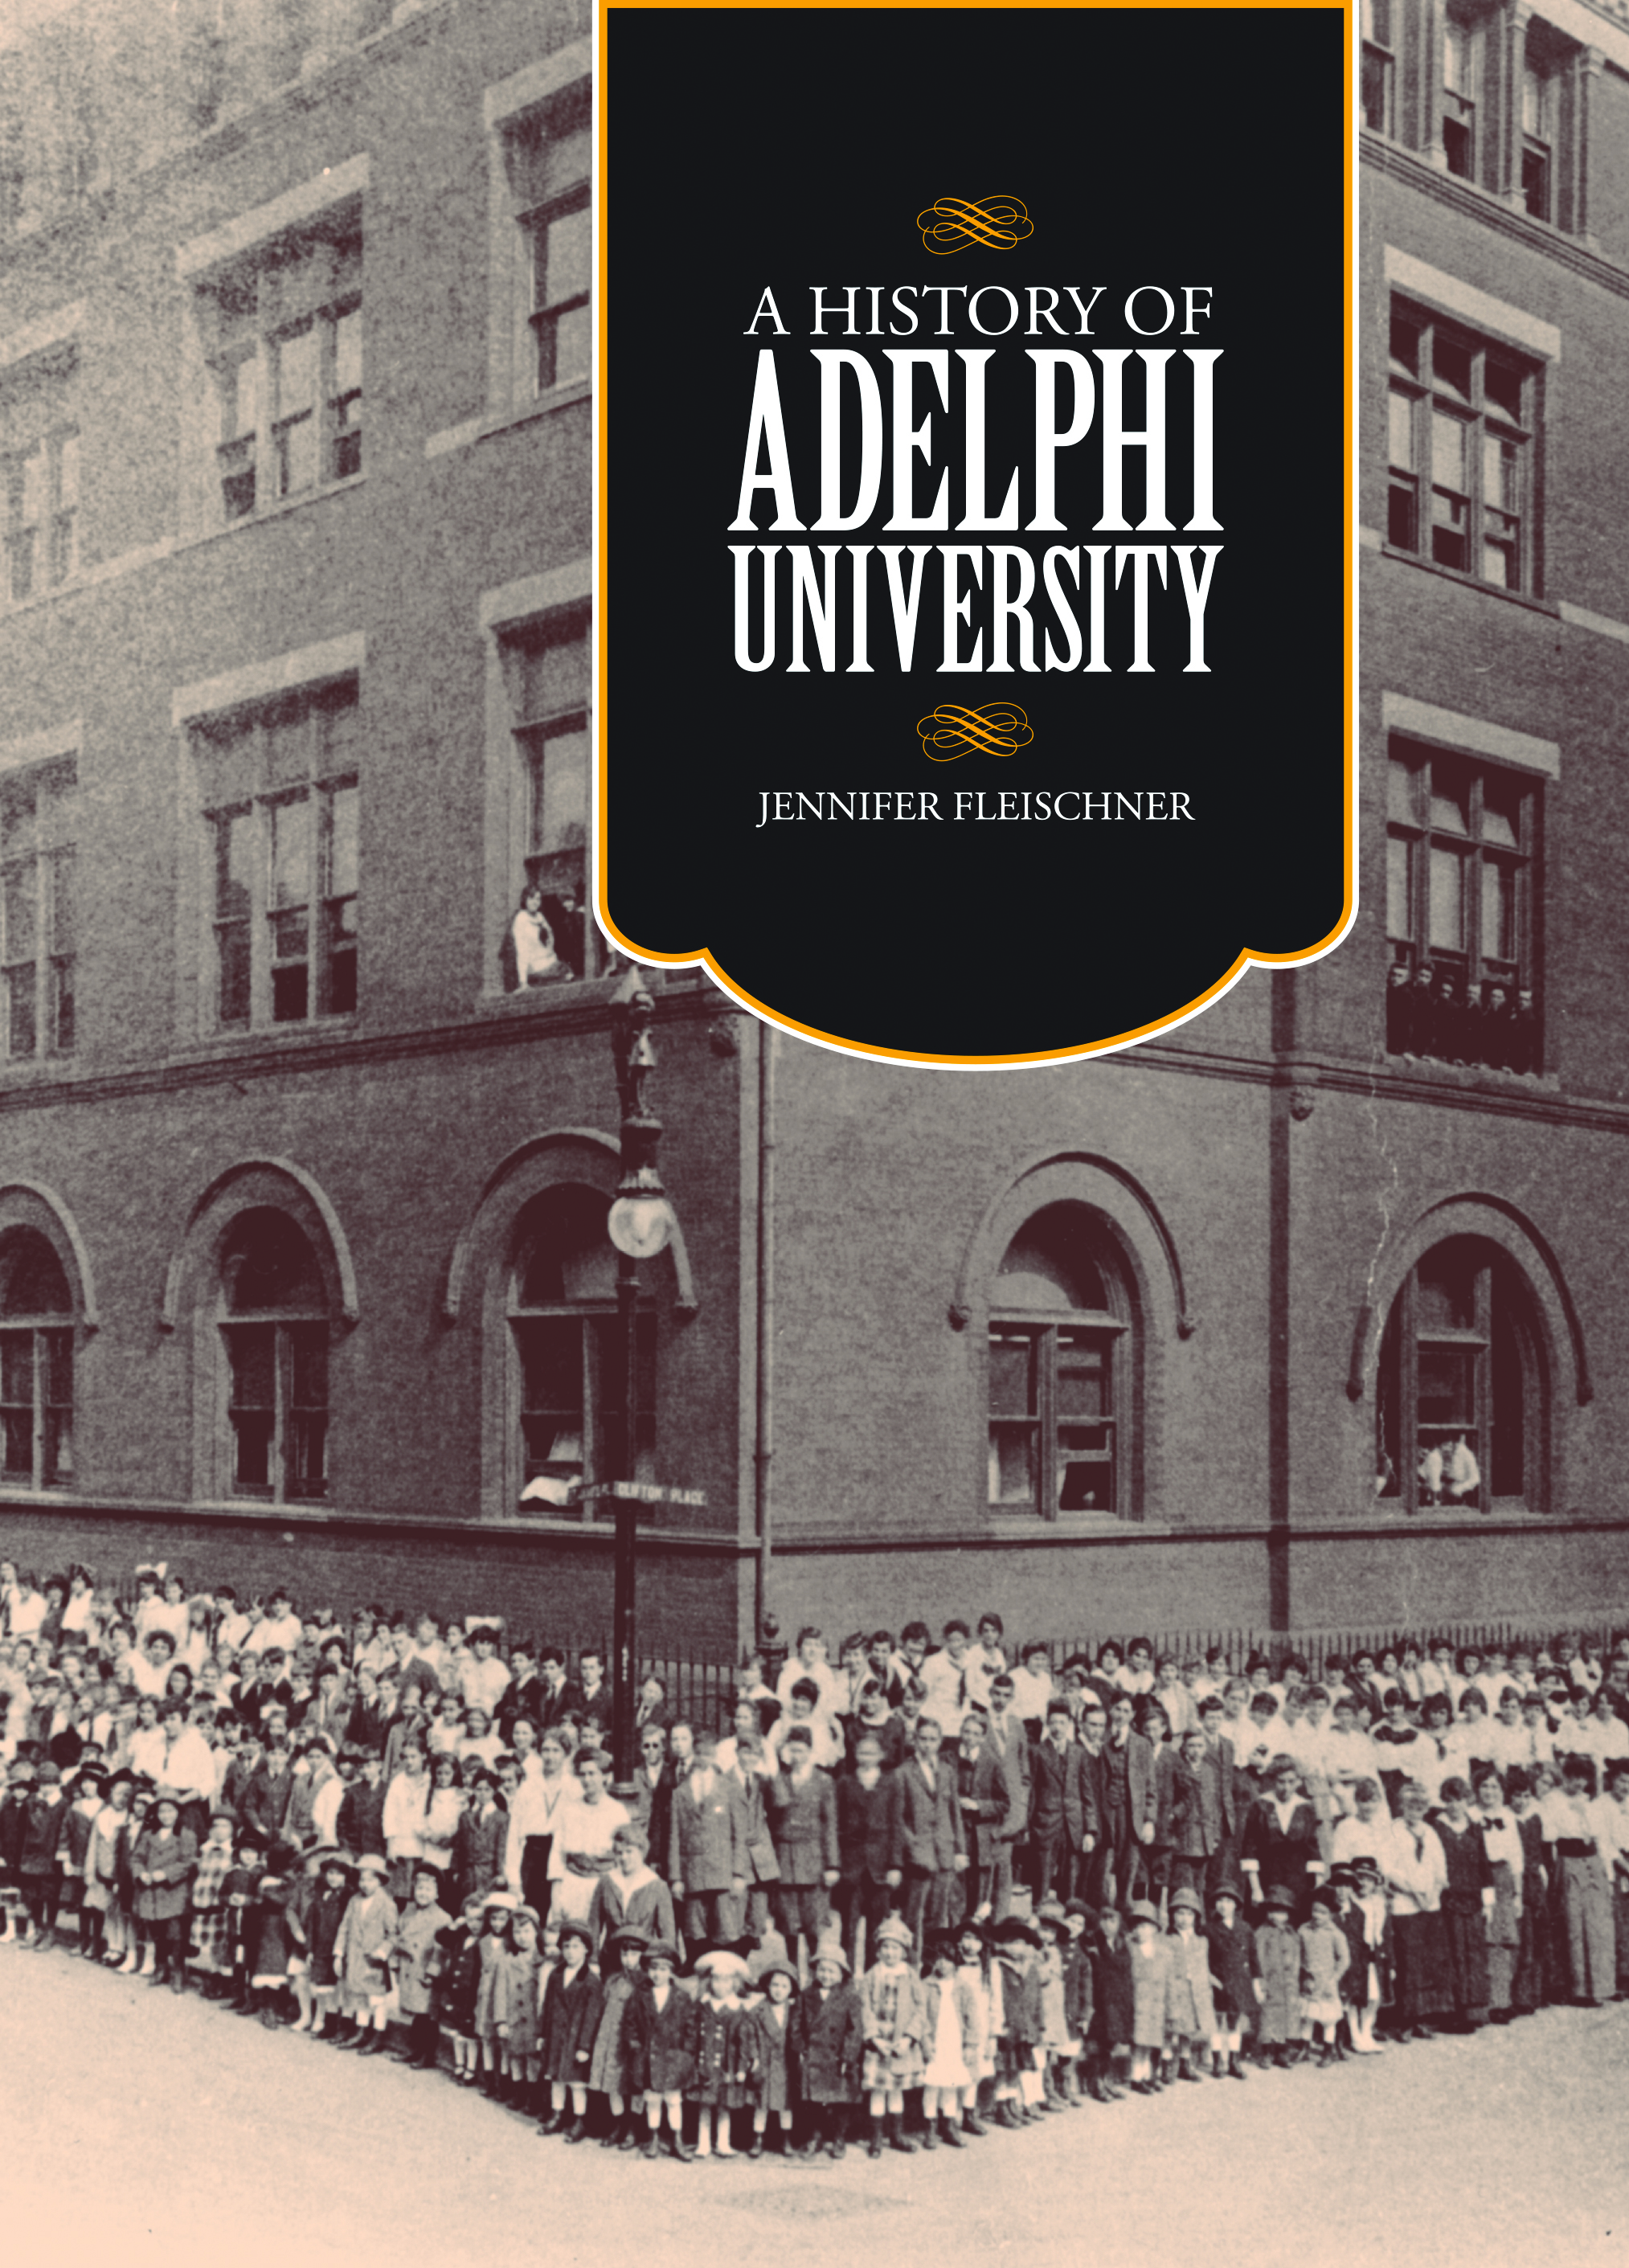 New Book Offers A Historical View Of Adelphi University